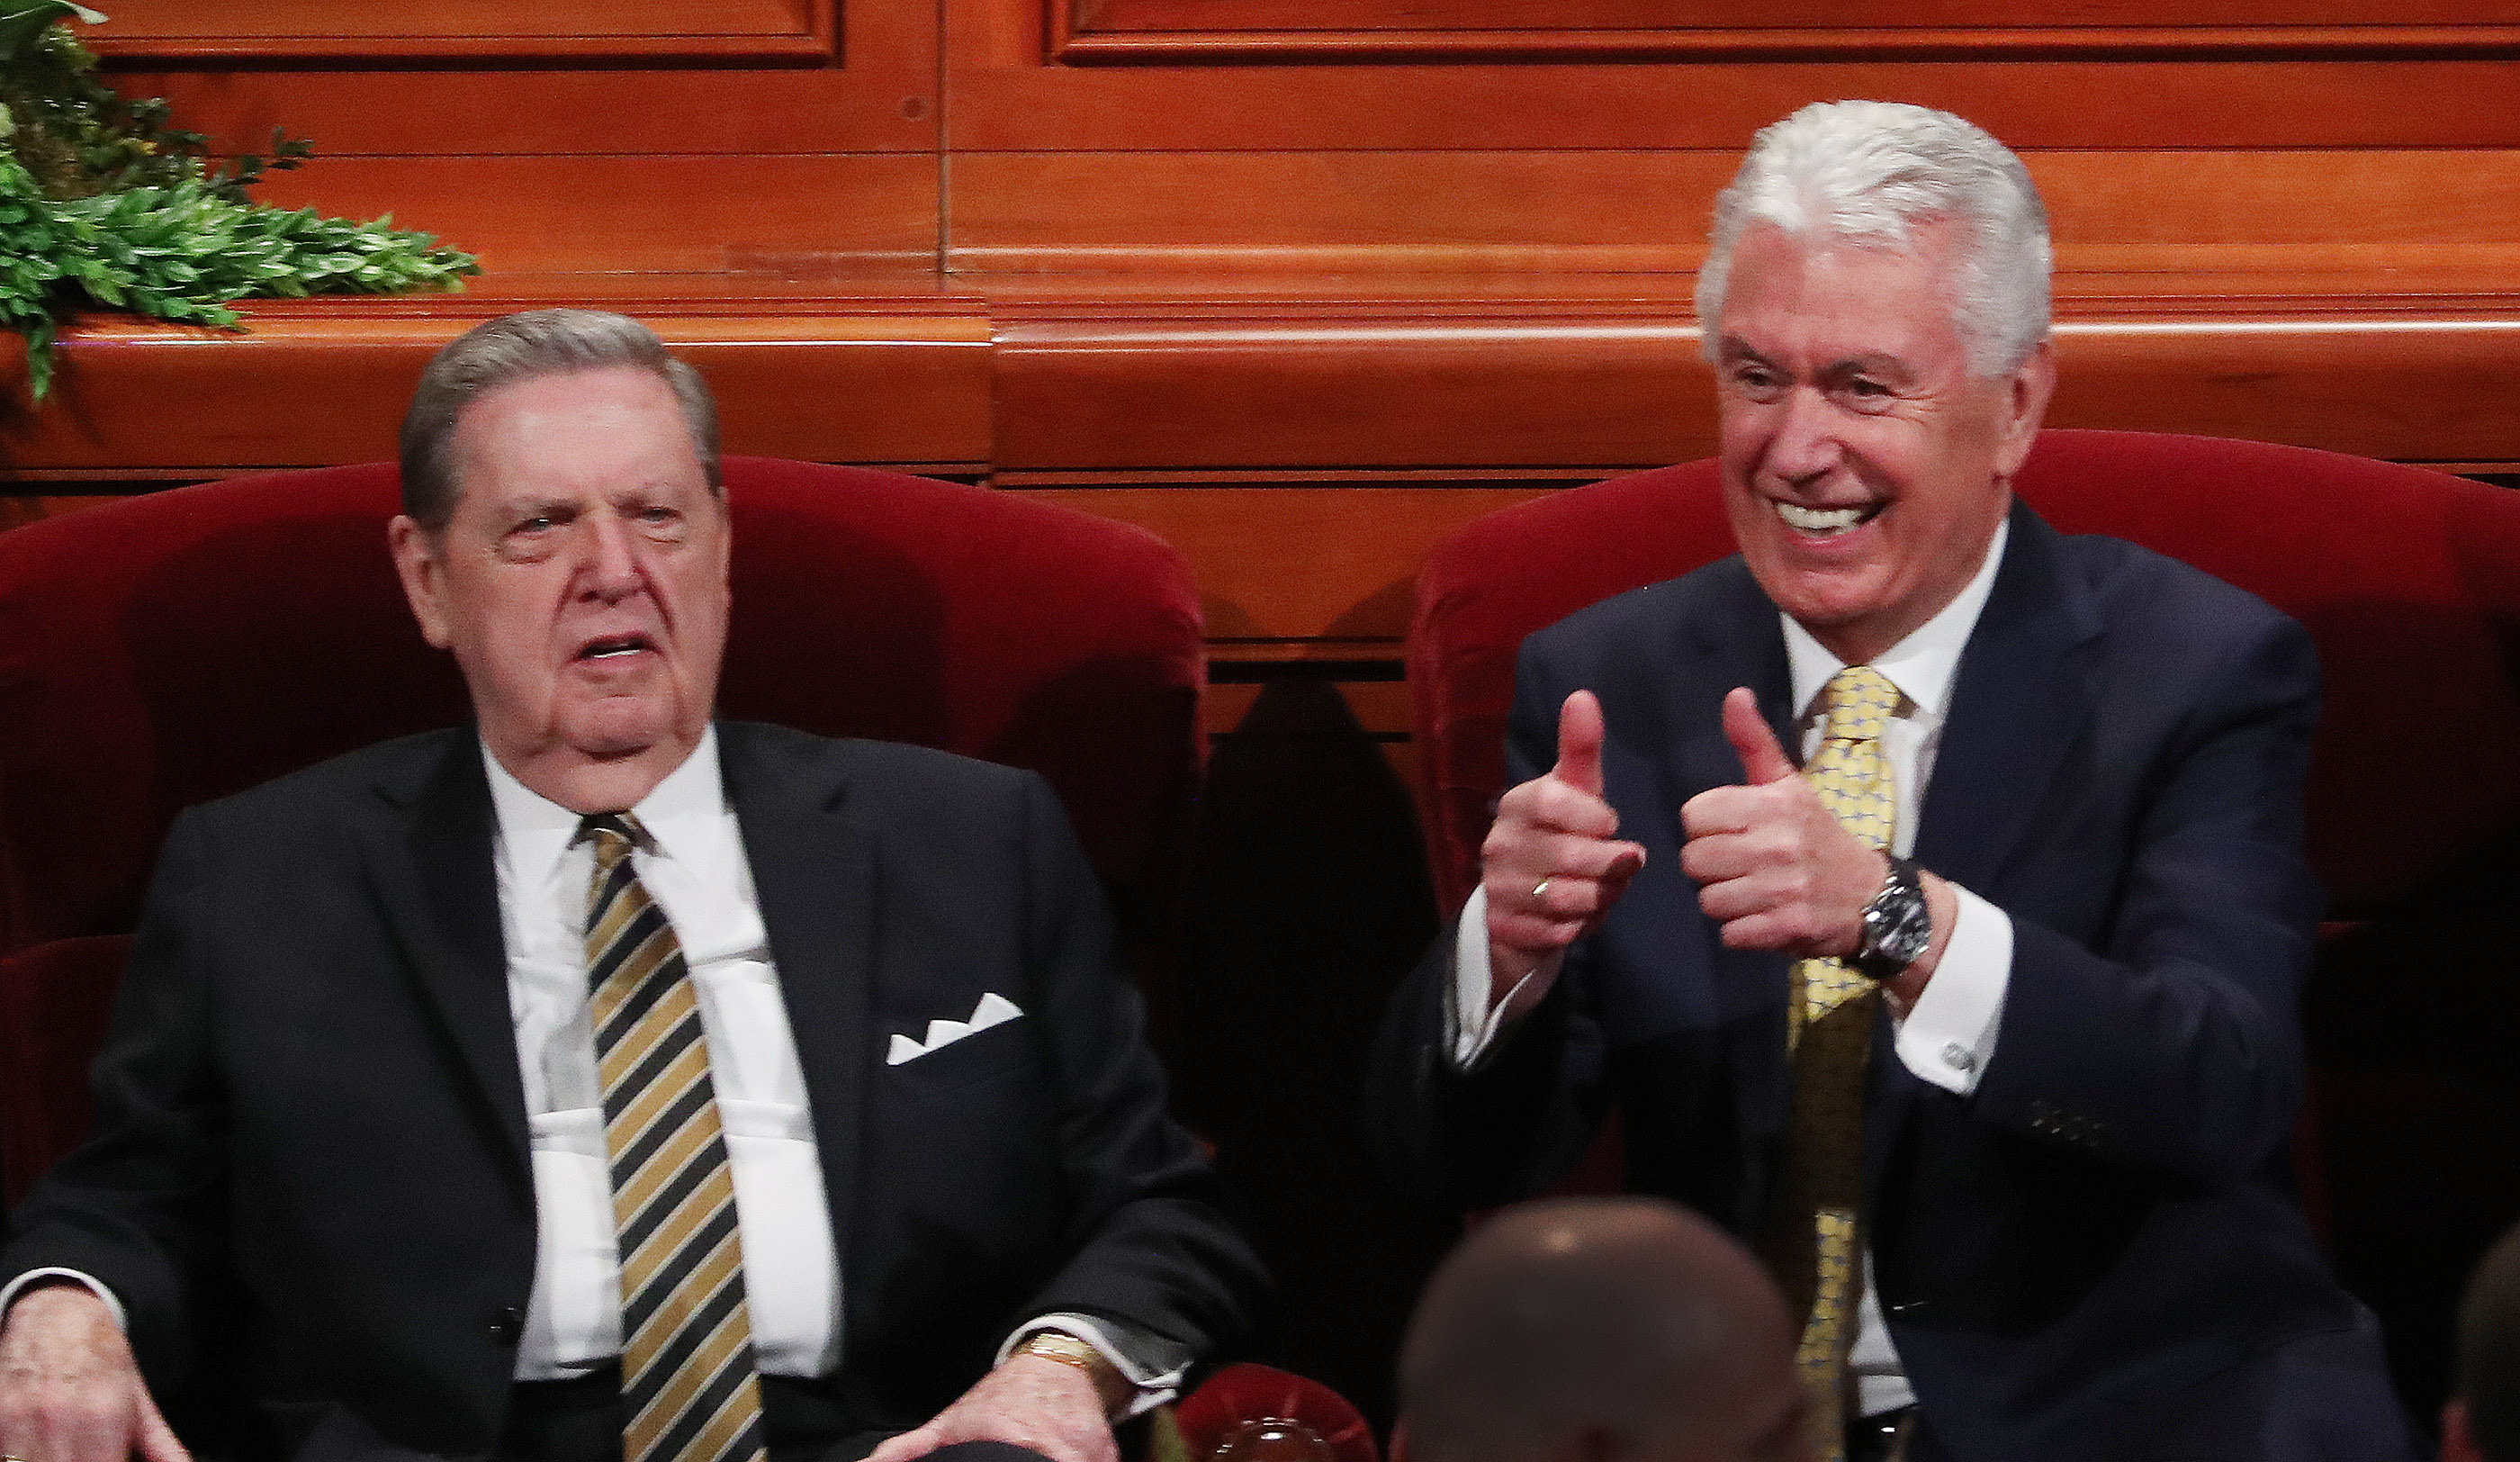 Elder Jeffrey R. Holland and Elder Dieter F. Uchtdorf react to attendees prior to the 189th Annual General Conference of The Church of Jesus Christ of Latter-day Saints in Salt Lake City on Saturday, April 6, 2019.